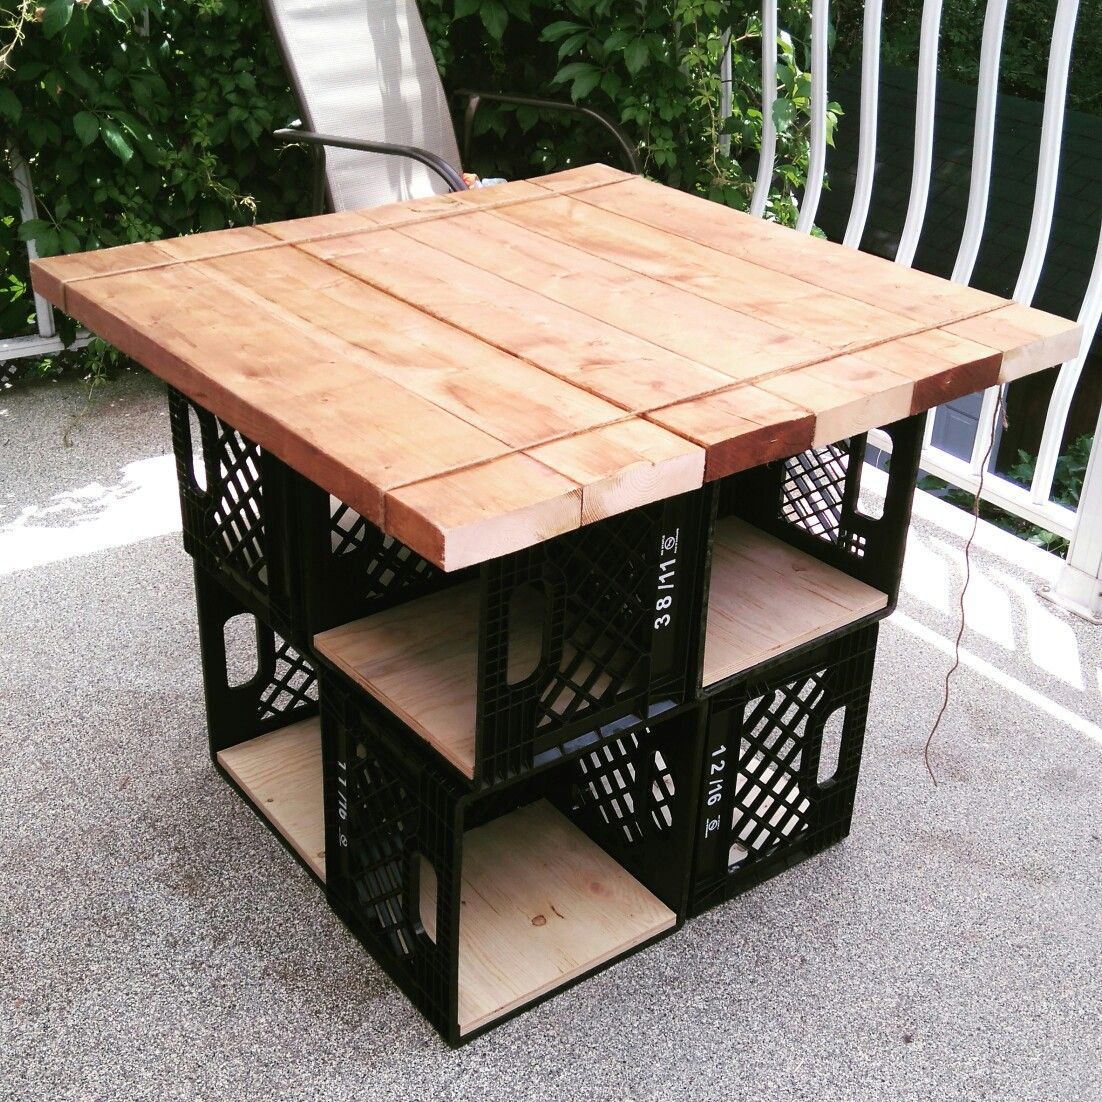 Milk crates patio table with storage furniture for Small outdoor table ideas